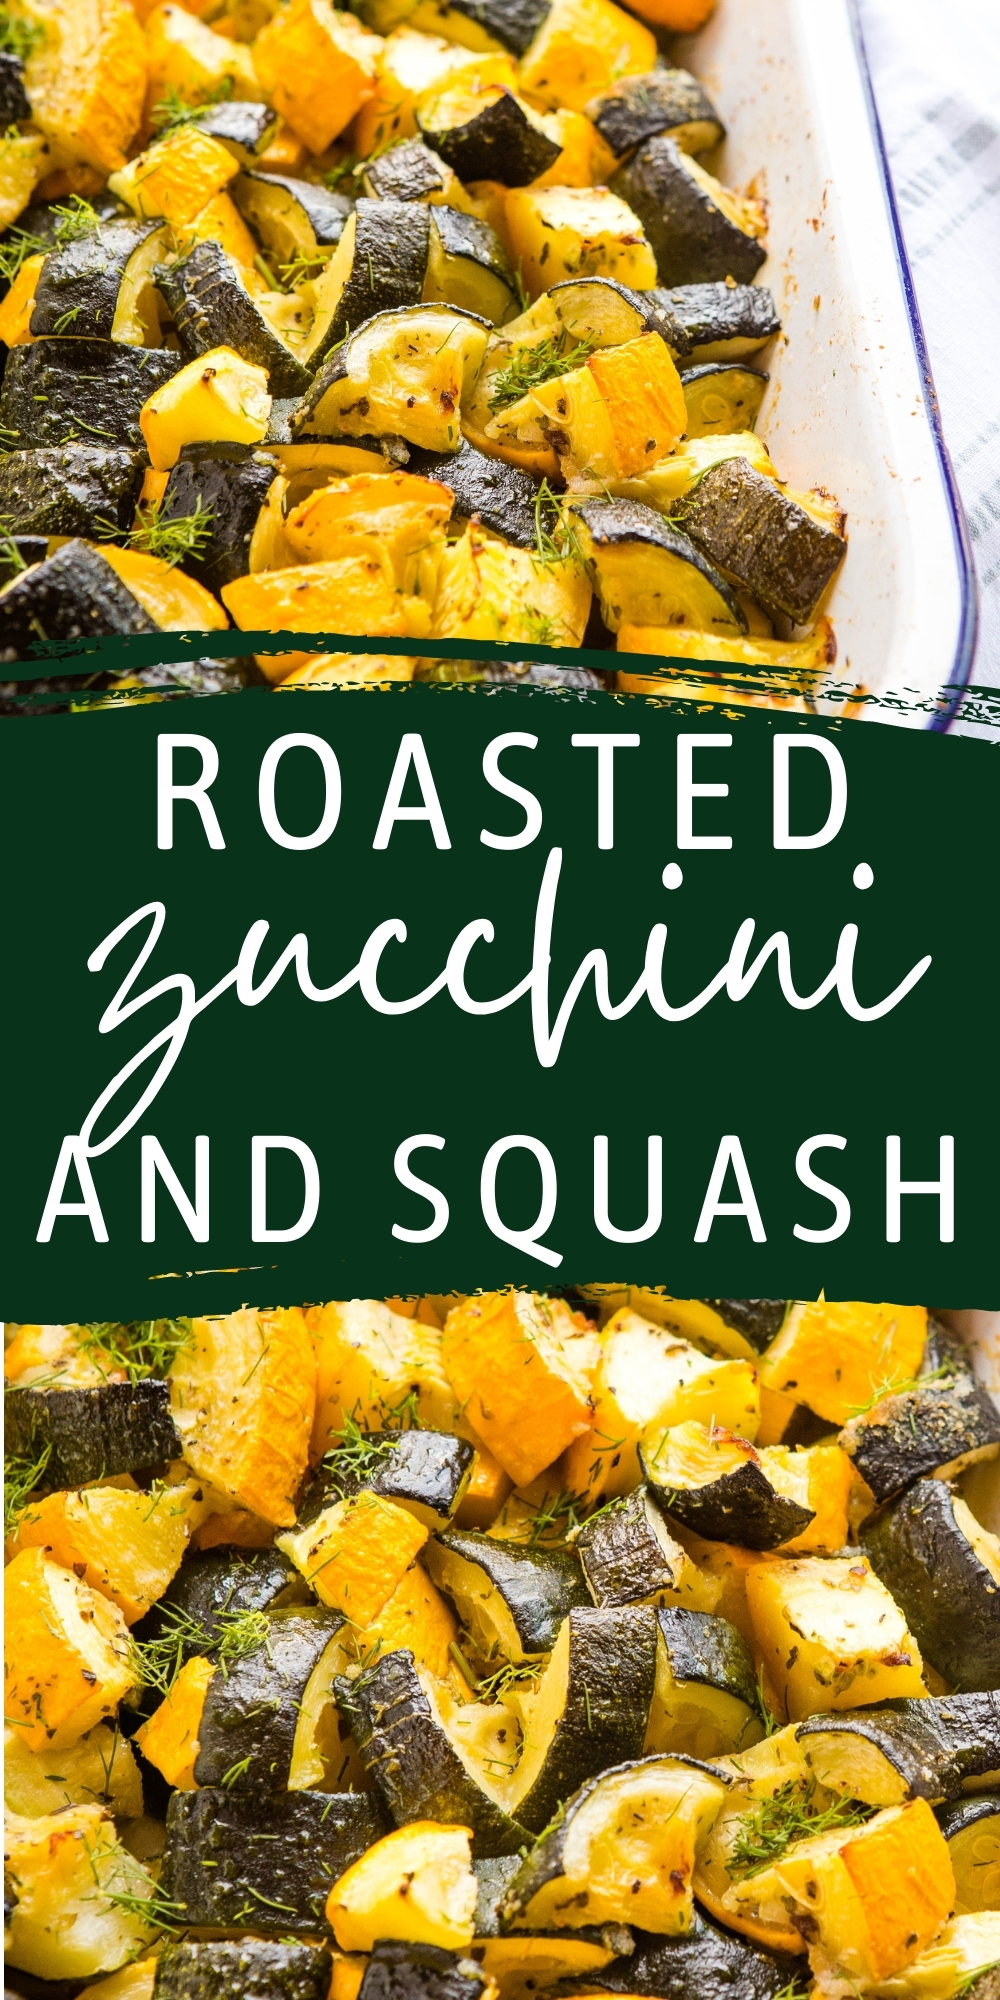 This Roasted Zucchini and Squash recipe is the perfect healthy side dish for fall! Fresh zucchini, summer squash, fresh herbs and basic pantry ingredients - easy to make and delicious! Recipe from thebusybaker.ca! #zucchini #squash #roastedzucchiniandsquash #veggies #sidedish #vegetarian #vegan via @busybakerblog